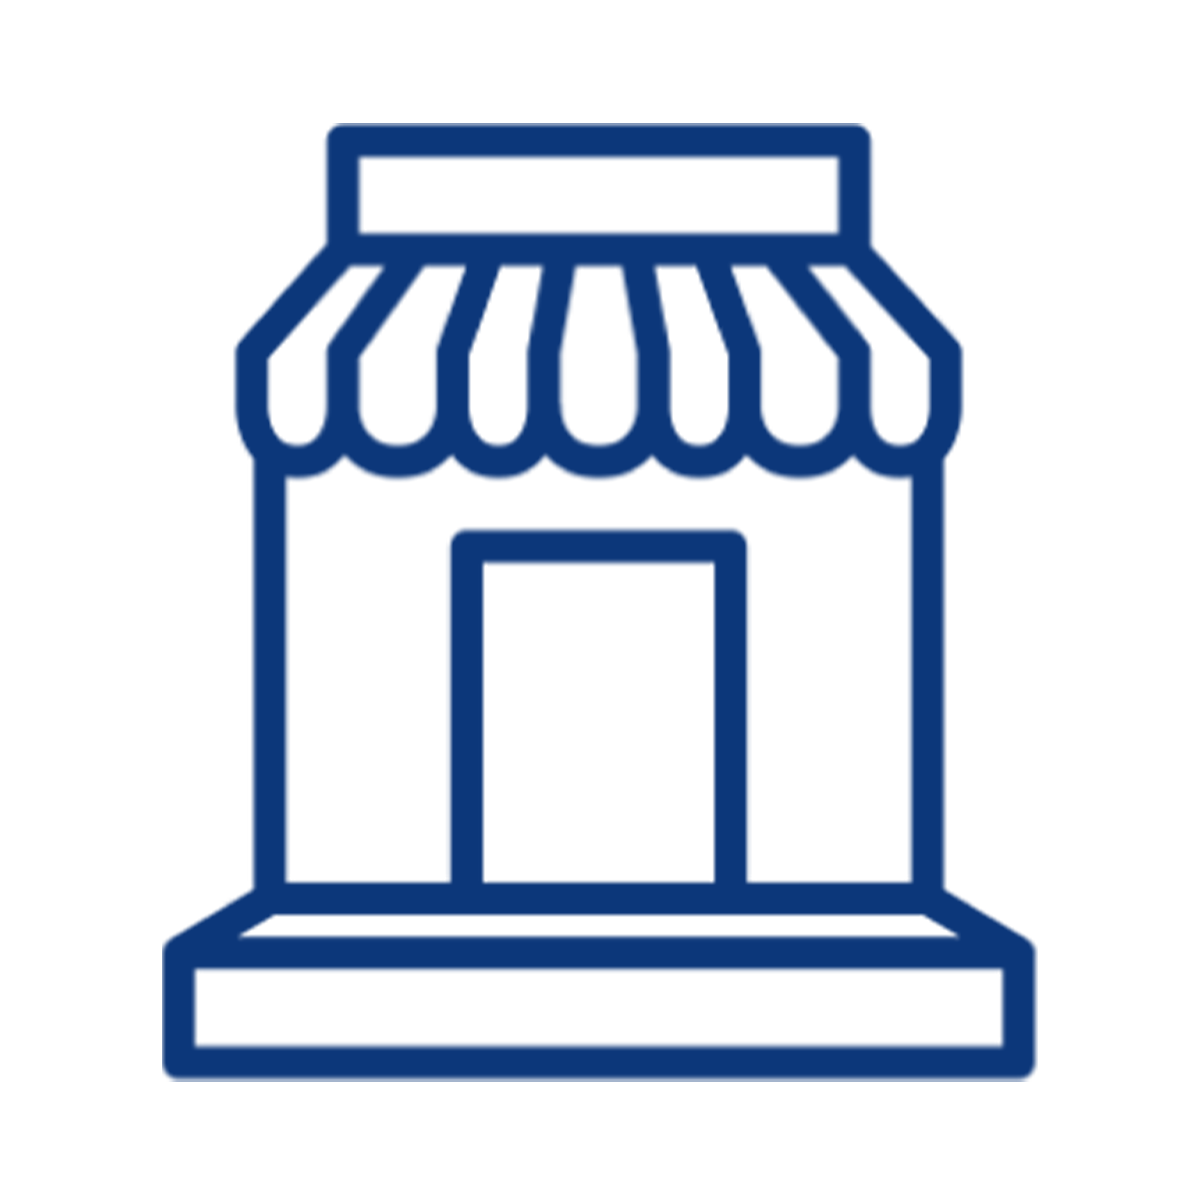 icons__0003_shop.png